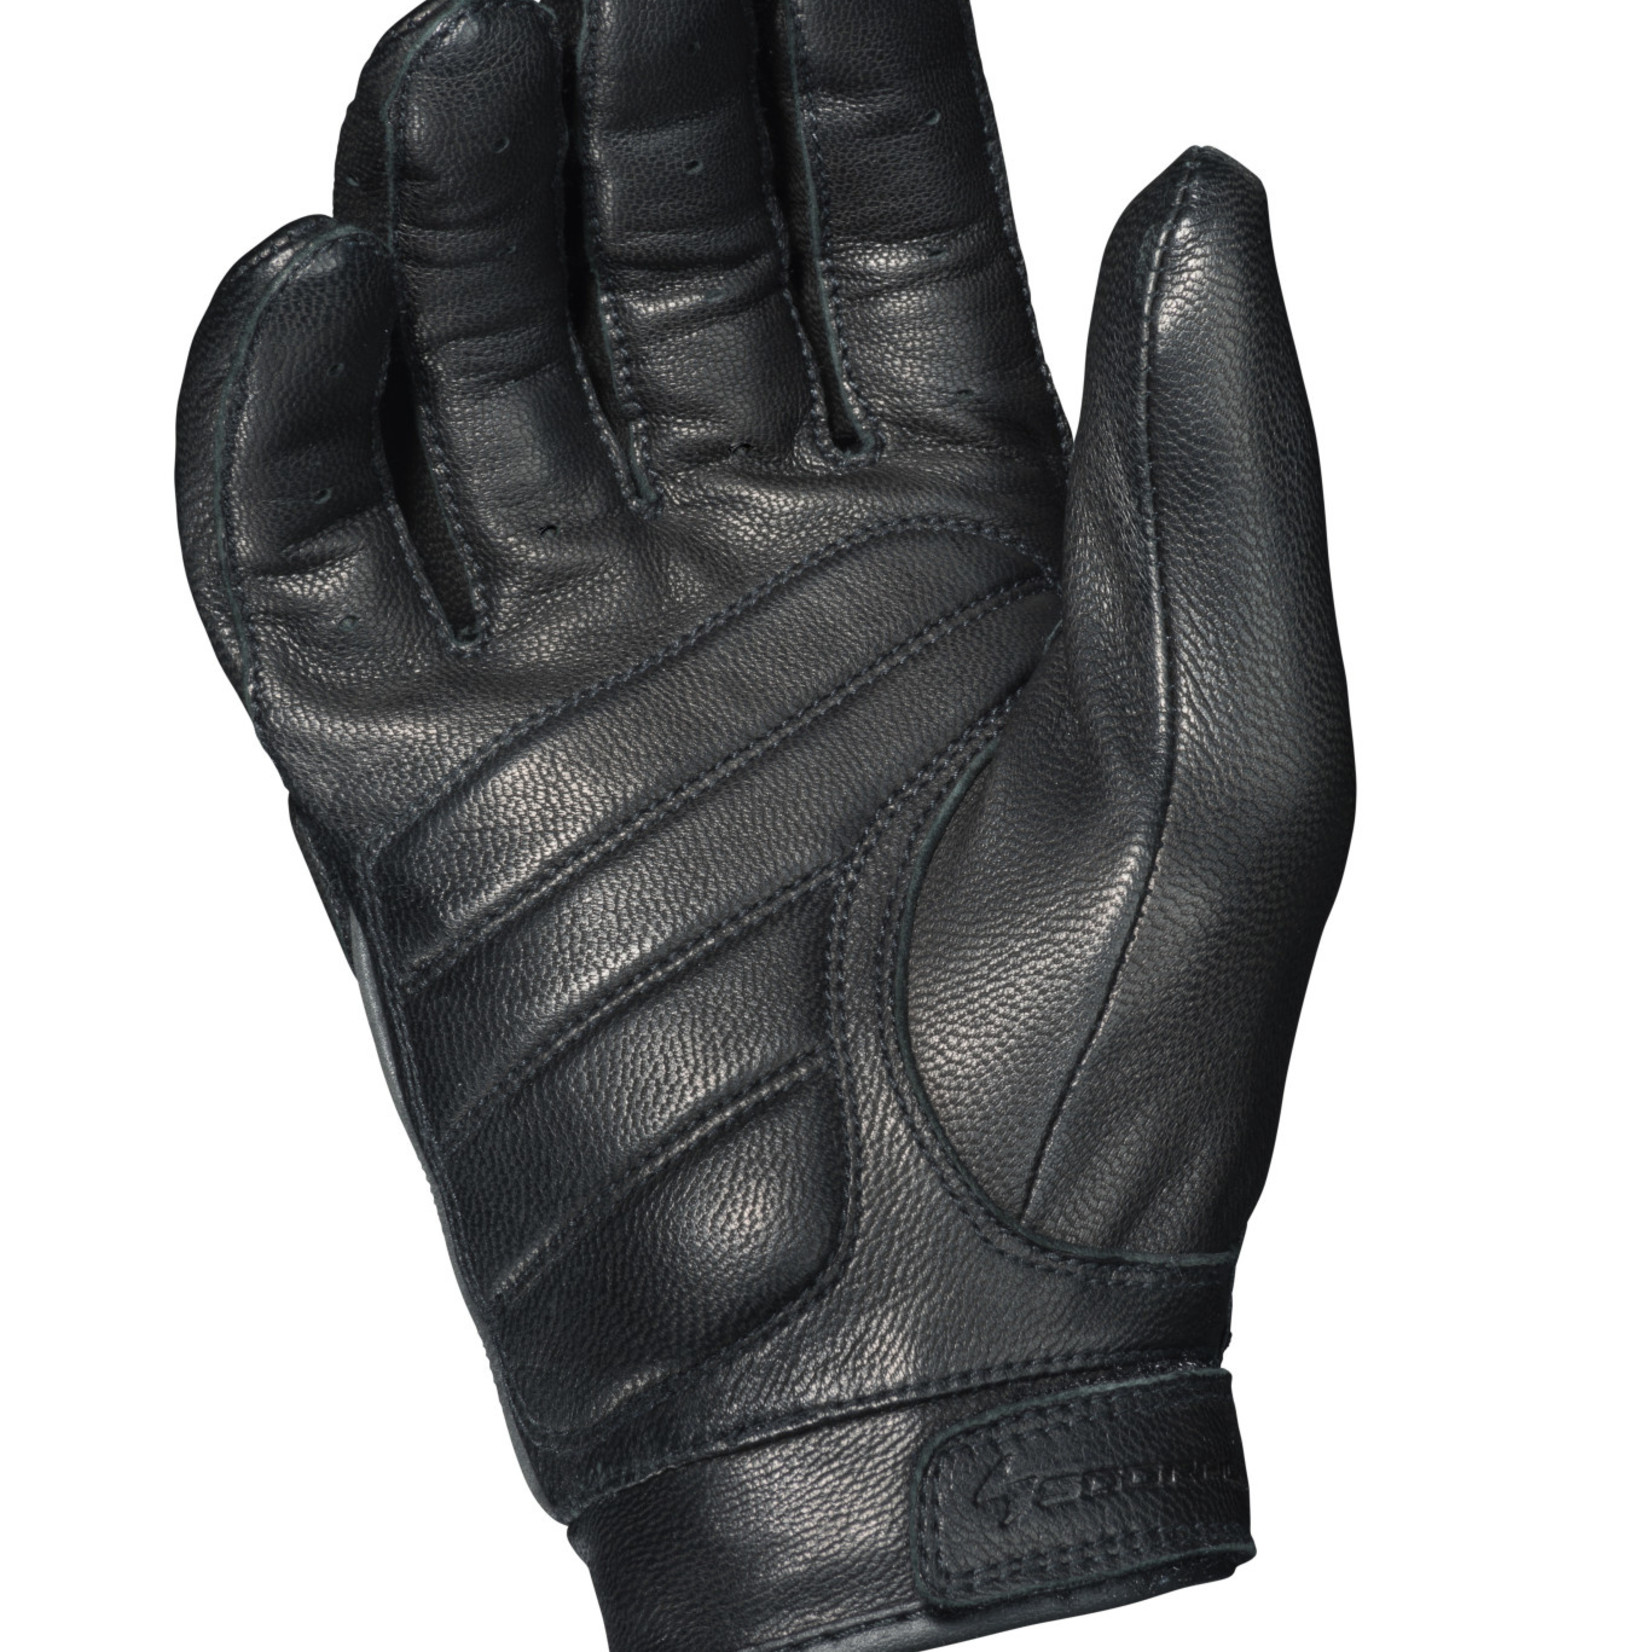 Scorpion Gripster Men's Leather Glove